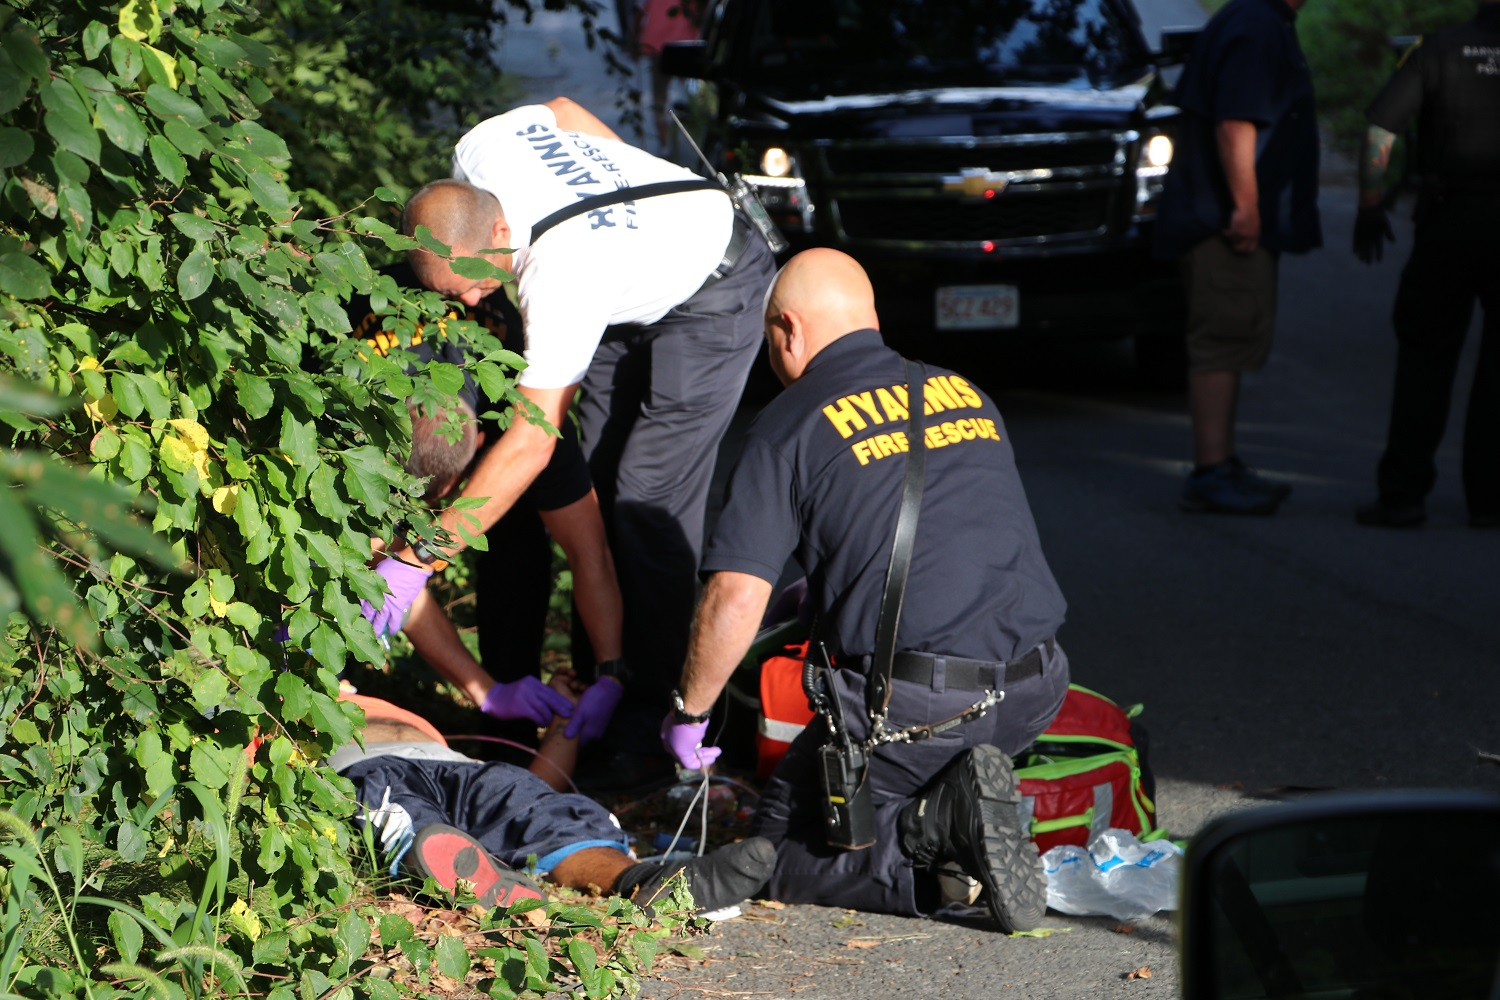 UPDATED: Detective starts doing CPR on man overdosing on